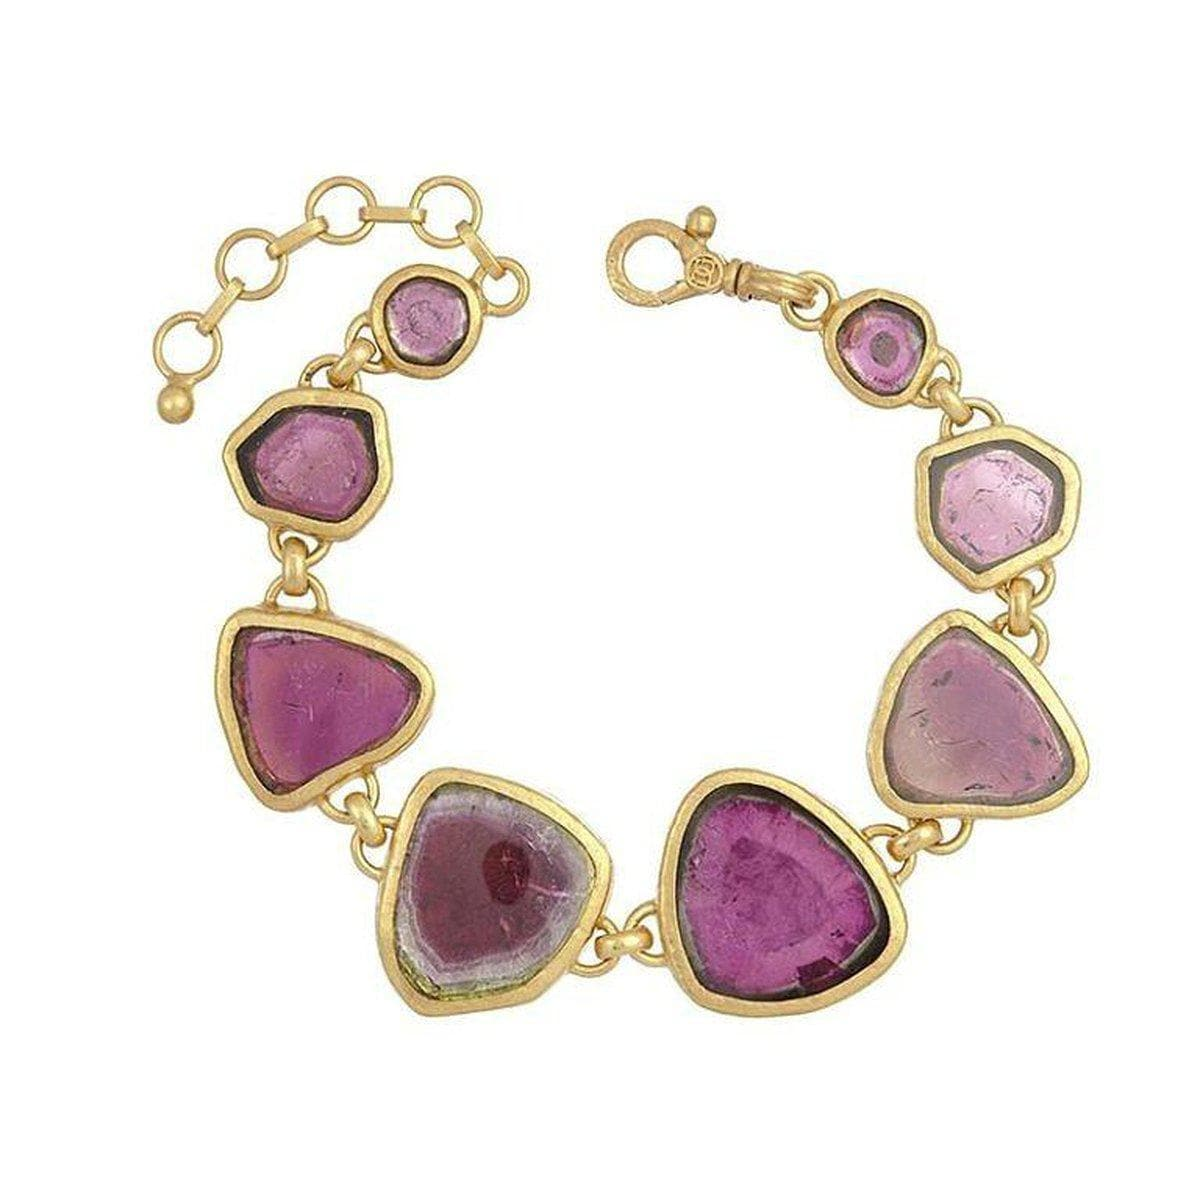 Elements 24K Gold Tourmaline Bracelet - B-U24783-WTR-GURHAN-Renee Taylor Gallery